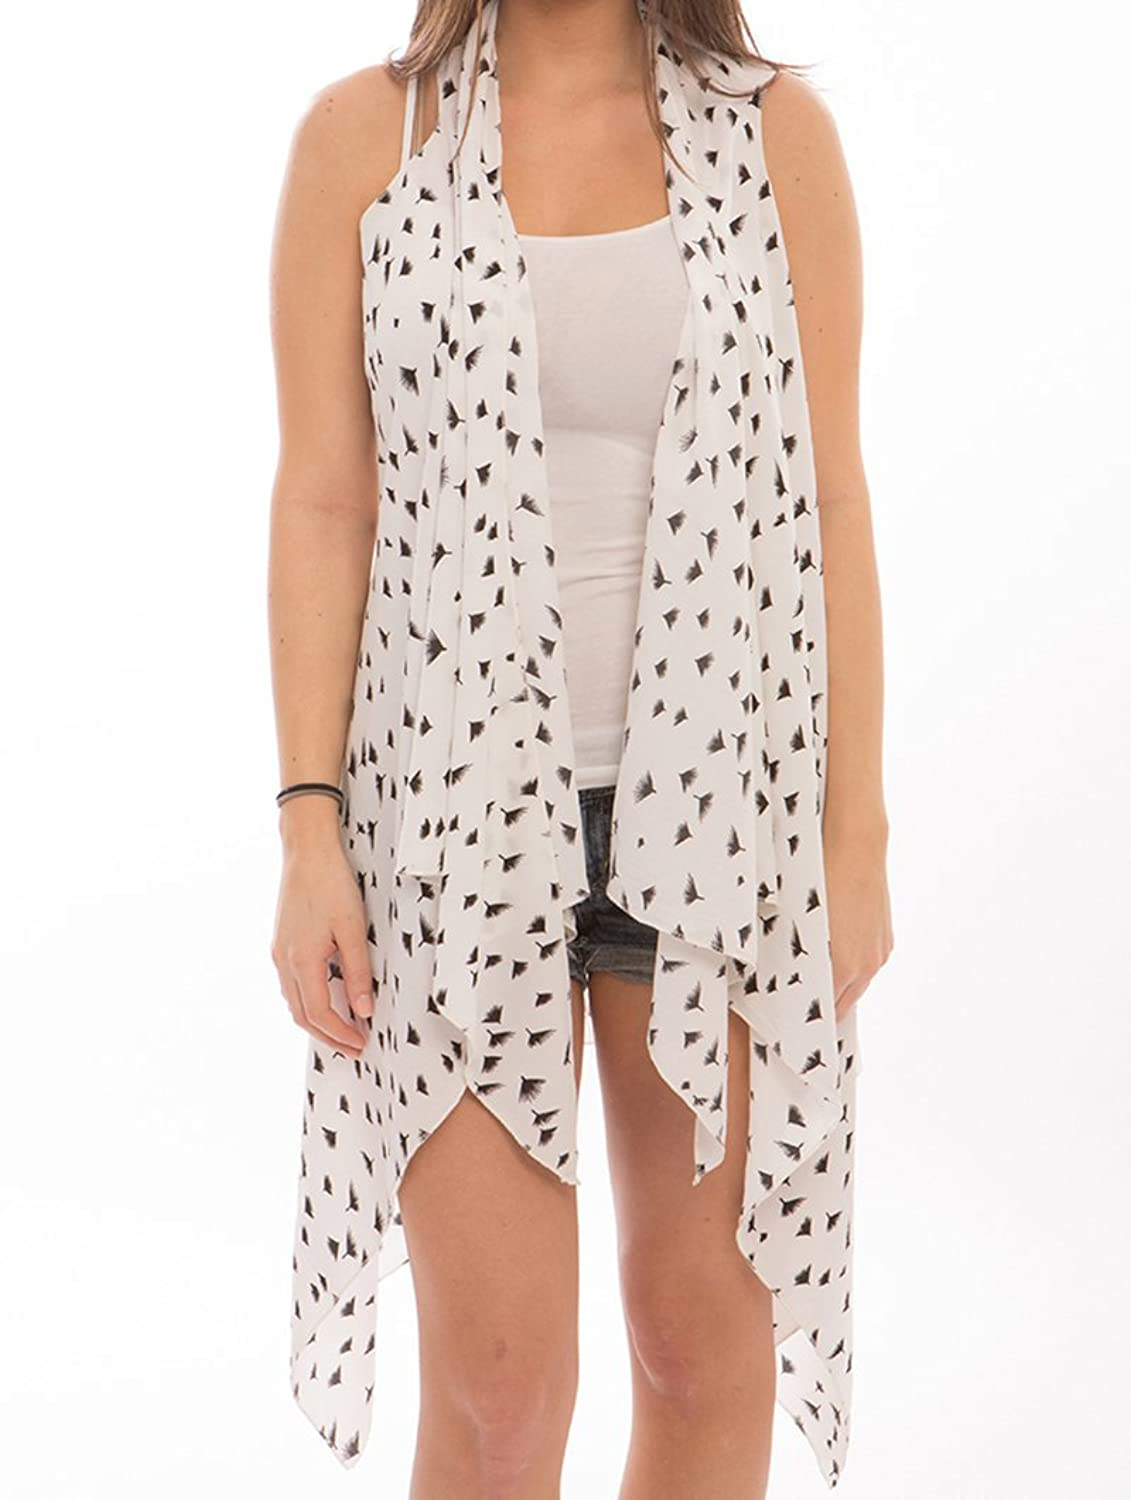 Parisian Chic Scarf Dandelion Flake Print Sheer Coverup Vest One Size Chiffon Swimwear White